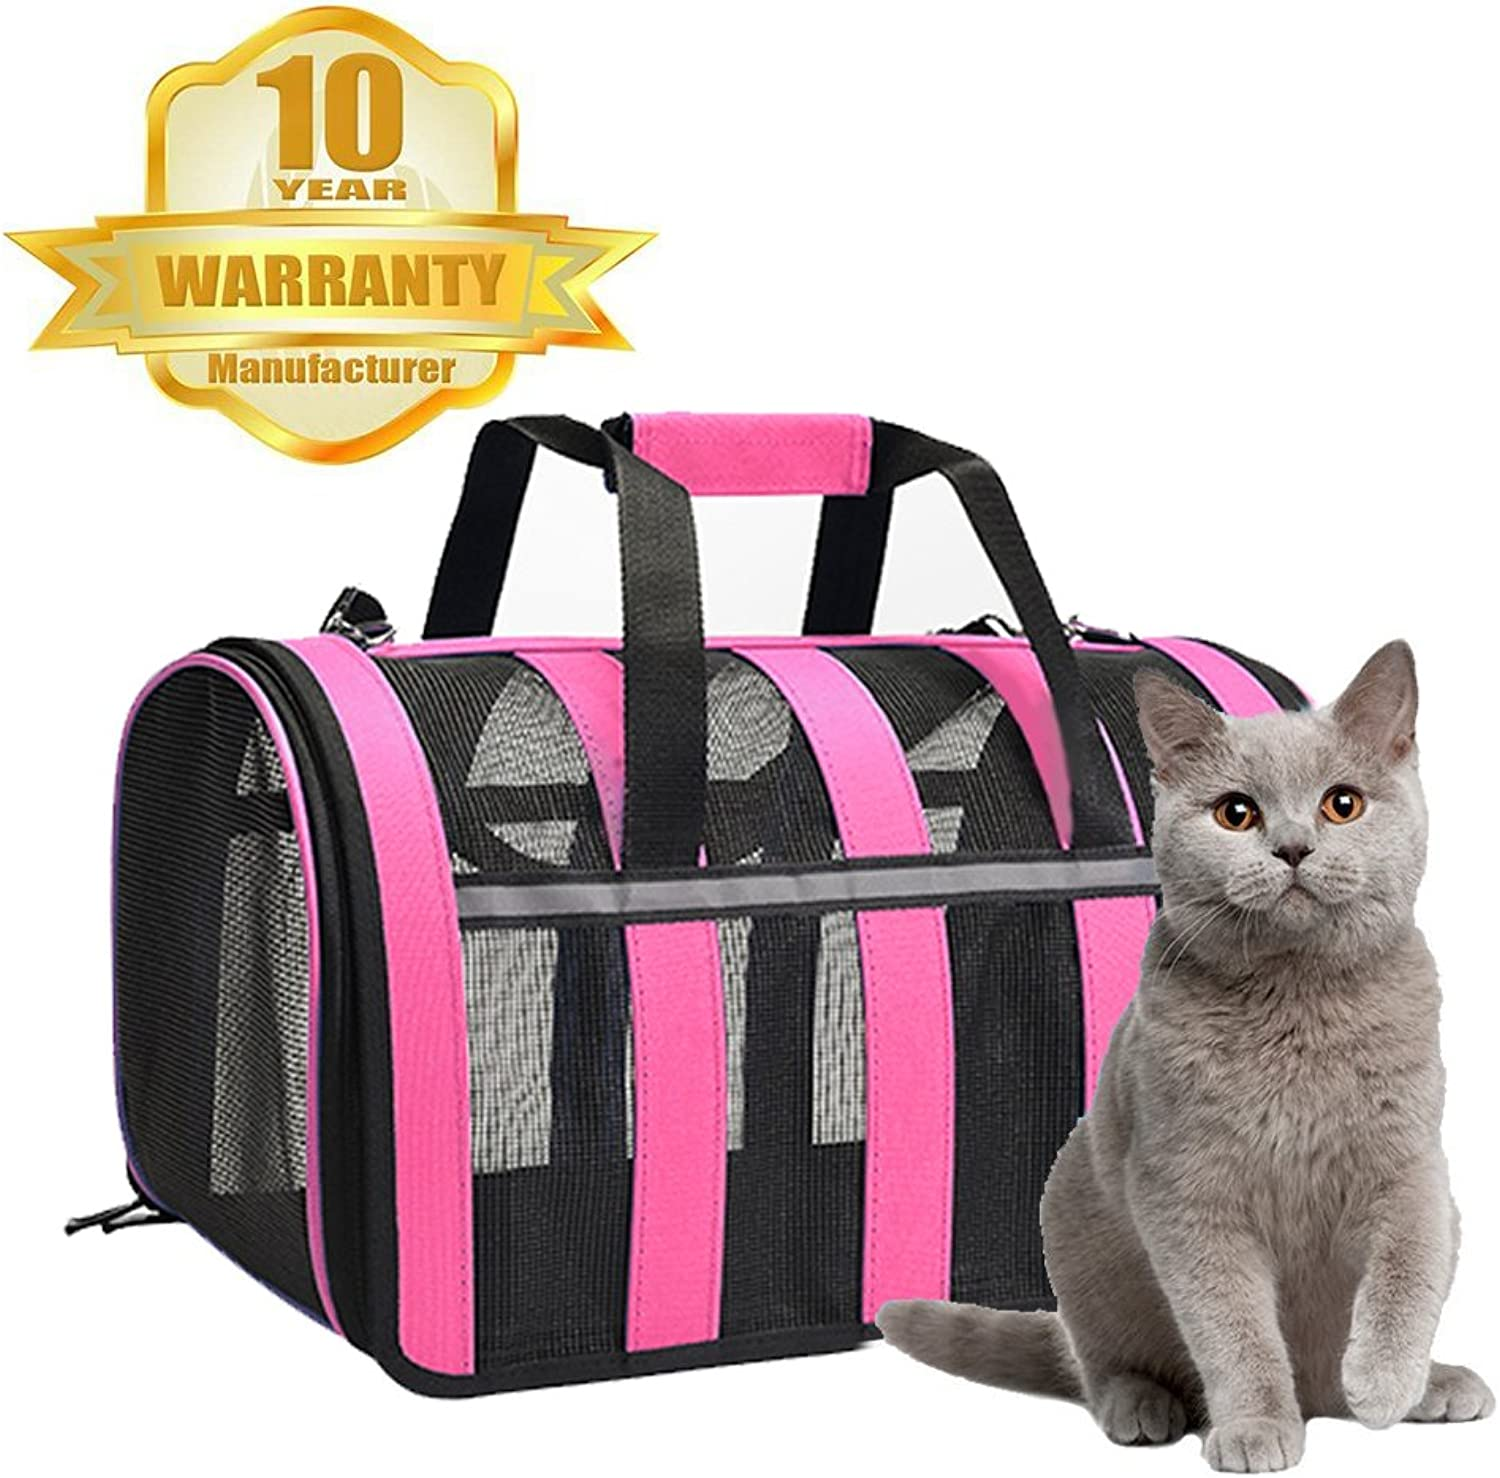 Cat Carrier Portable Pet CarrierSmall Dogs,Puppy, Cats Travel Carrier Soft Sided Tote Bag Purse,Airline Approved, Perfect for Small Animals (Pink)